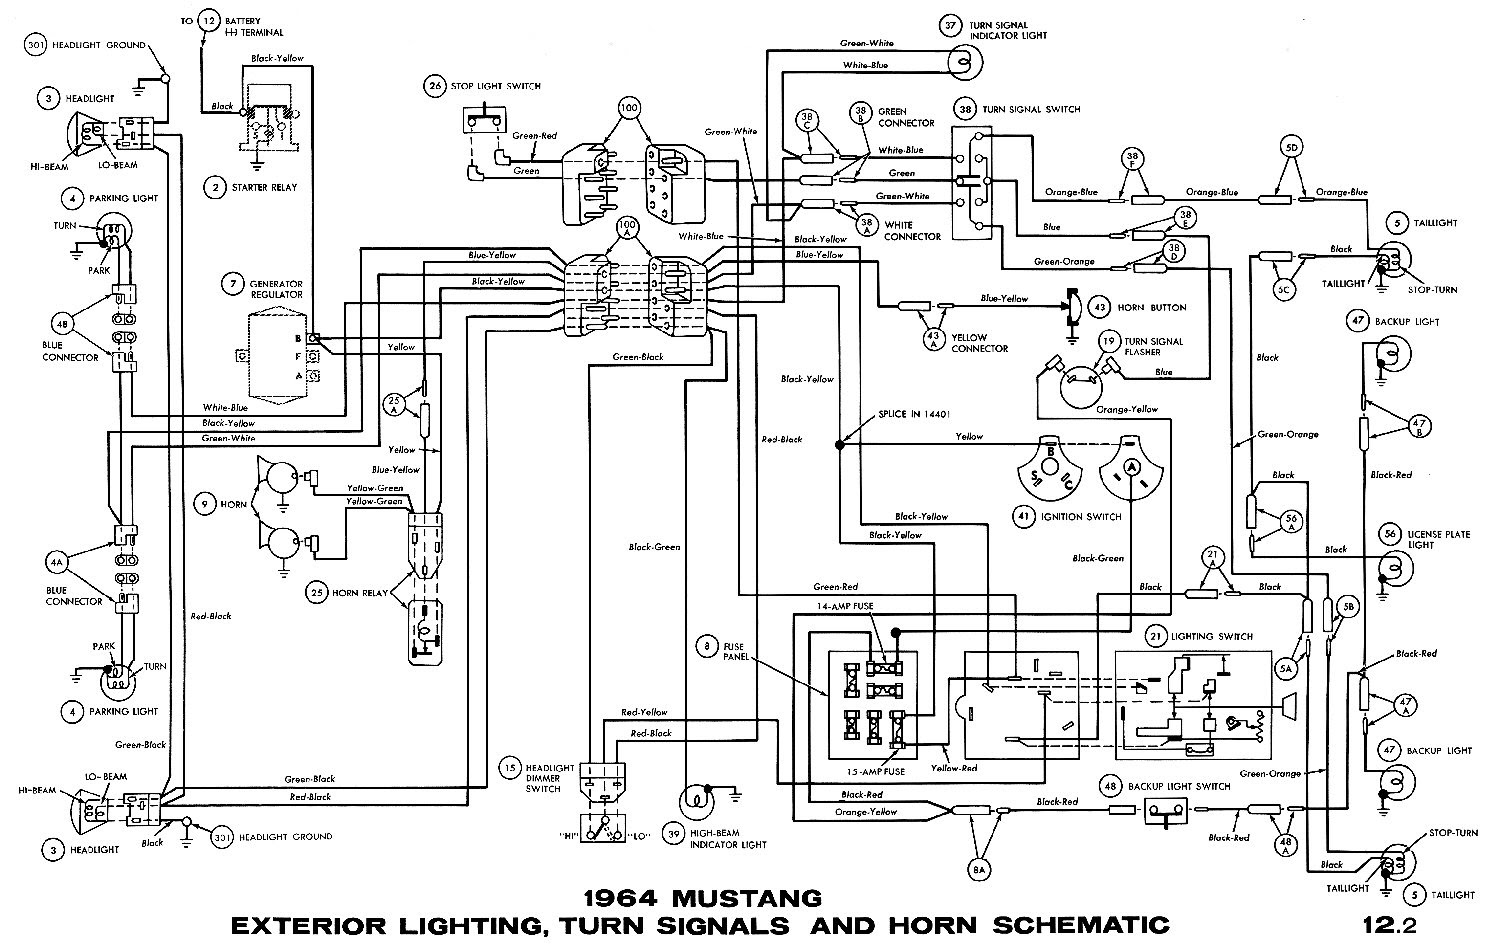 1964 1 2 Ford Mustang Wiring Diagram Wiring Diagram Inspection Inspection Consorziofiuggiturismo It